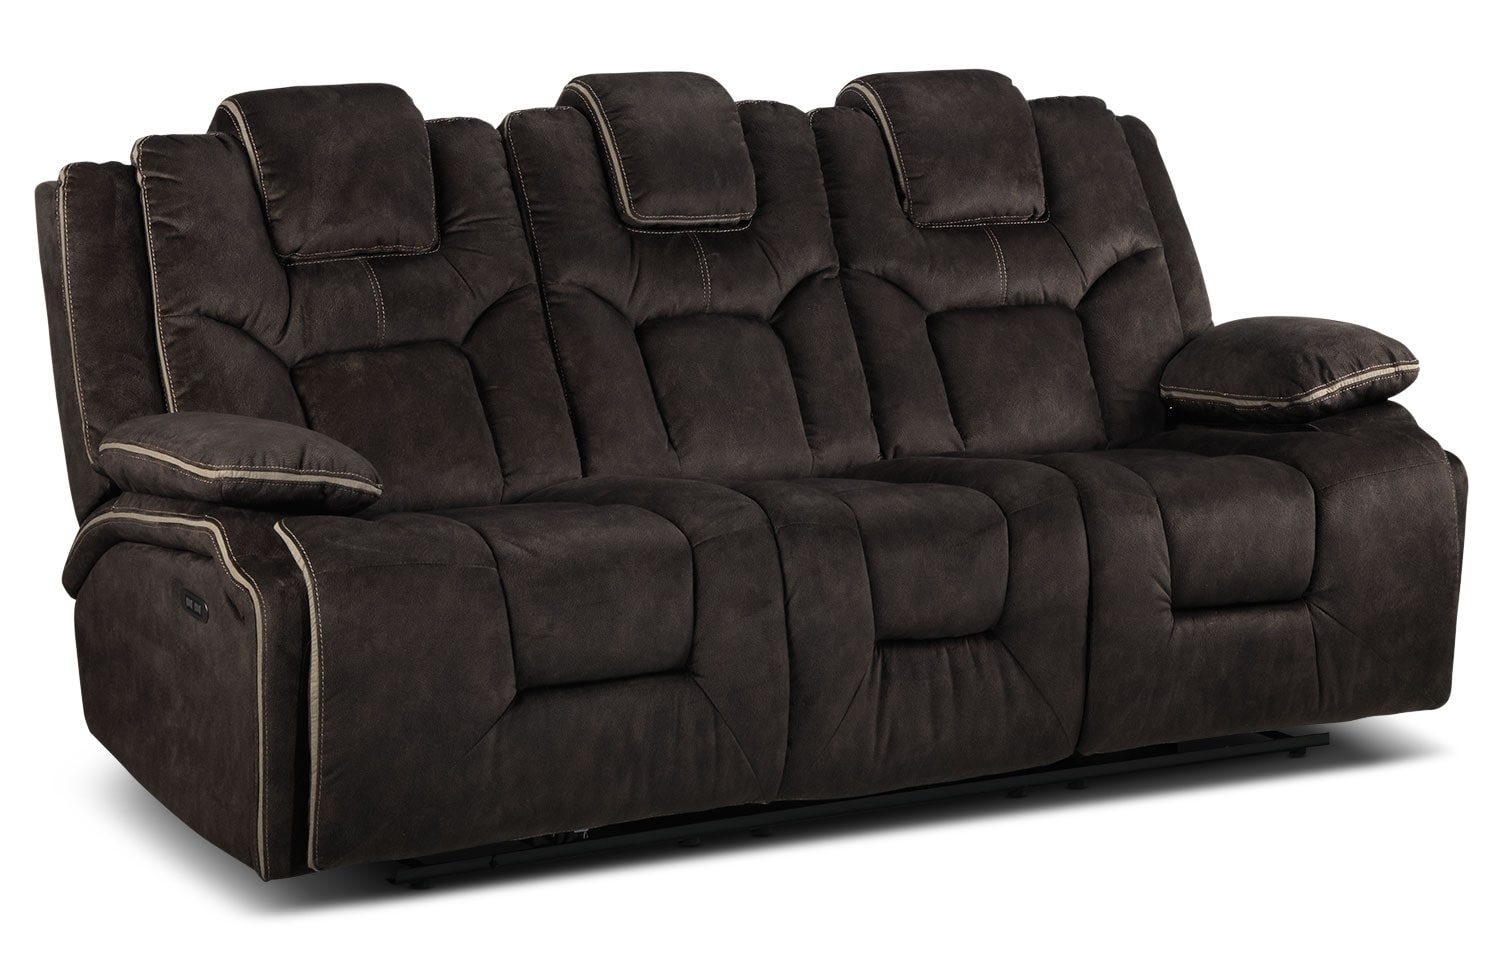 Sondra Power Reclining Sofa - Deep Brown